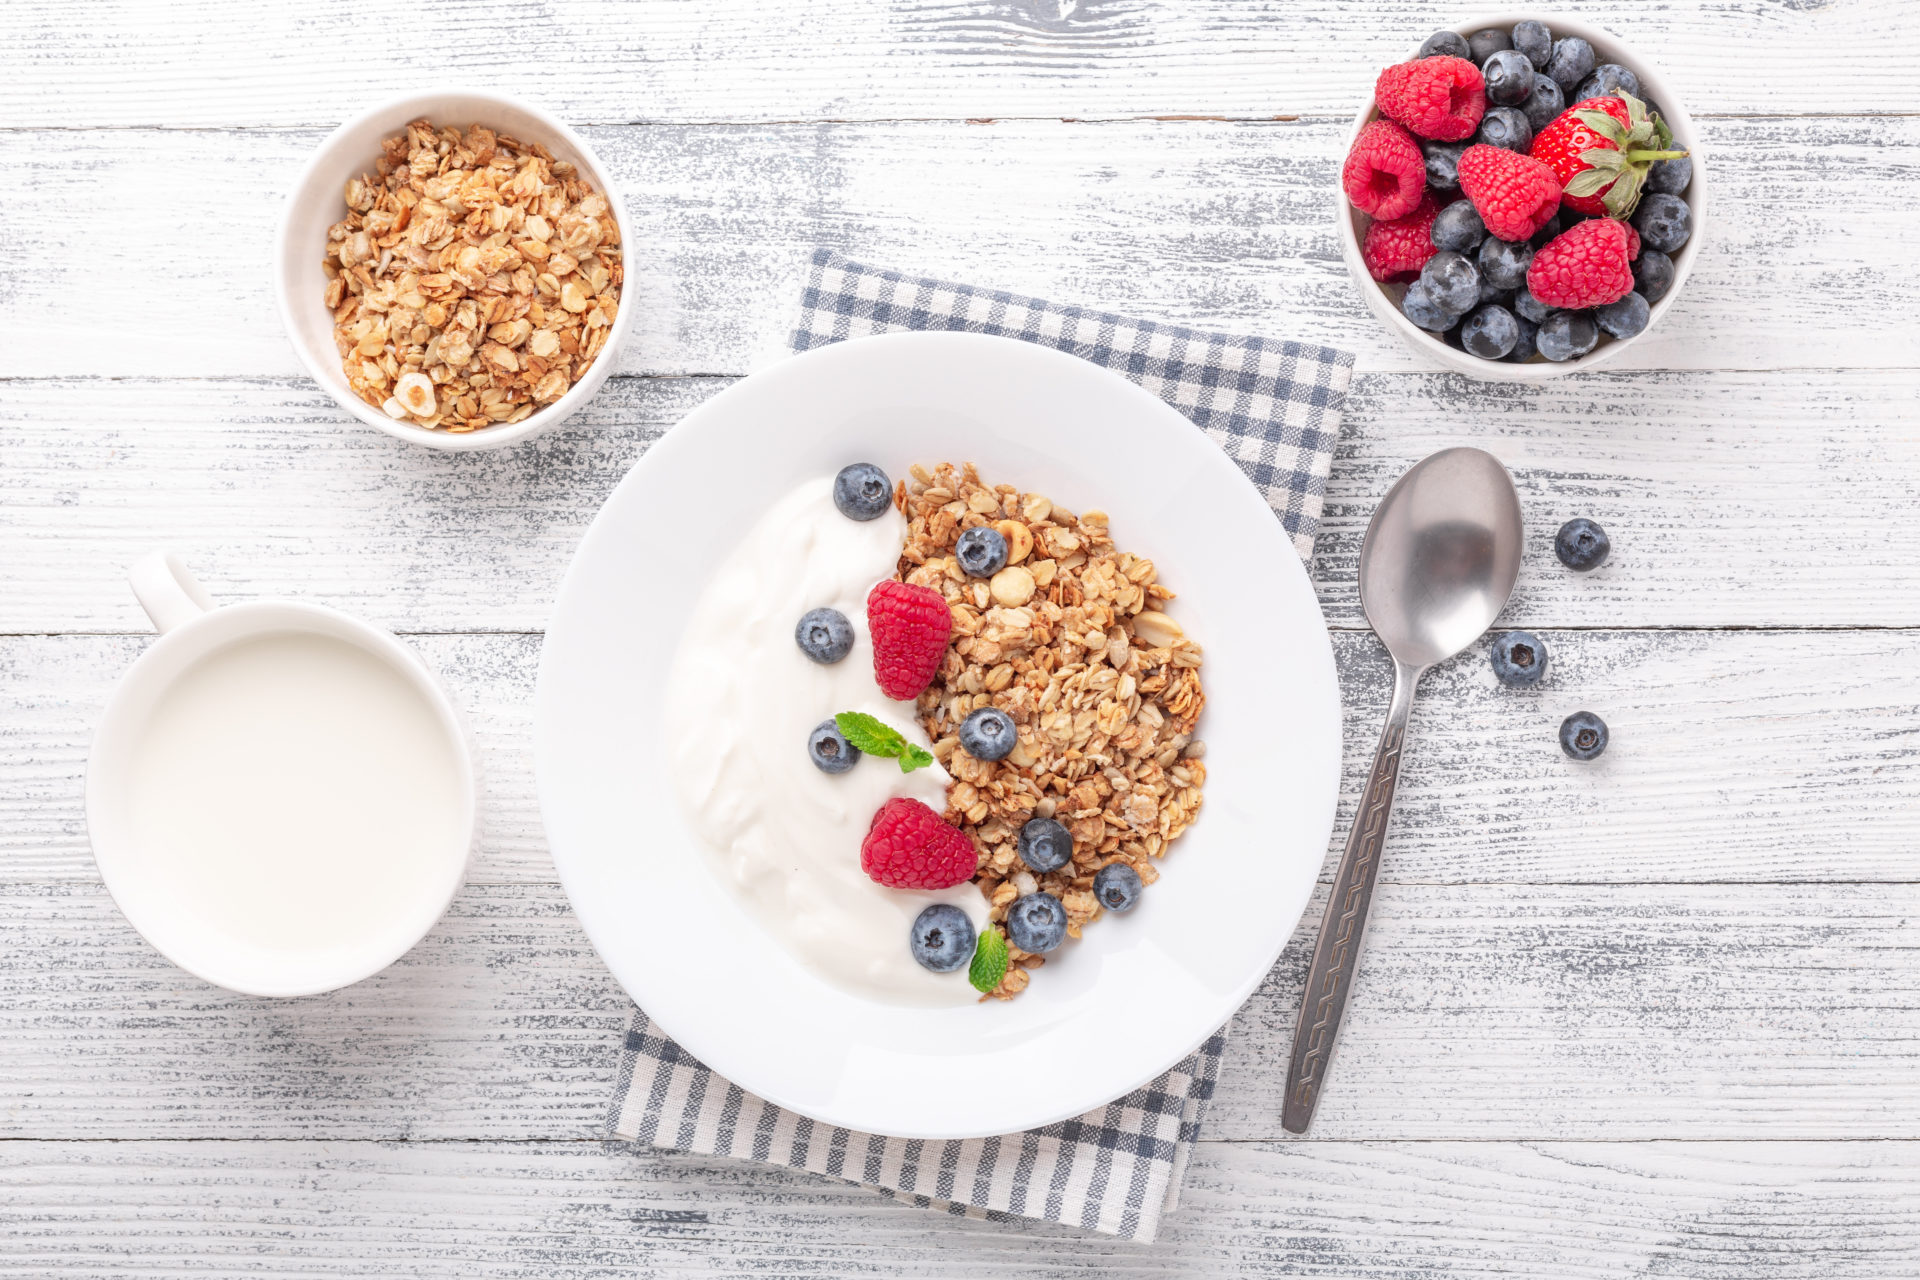 Yogurt,With,Baked,Granola,And,Berries,In,White,Ceramic,Plate